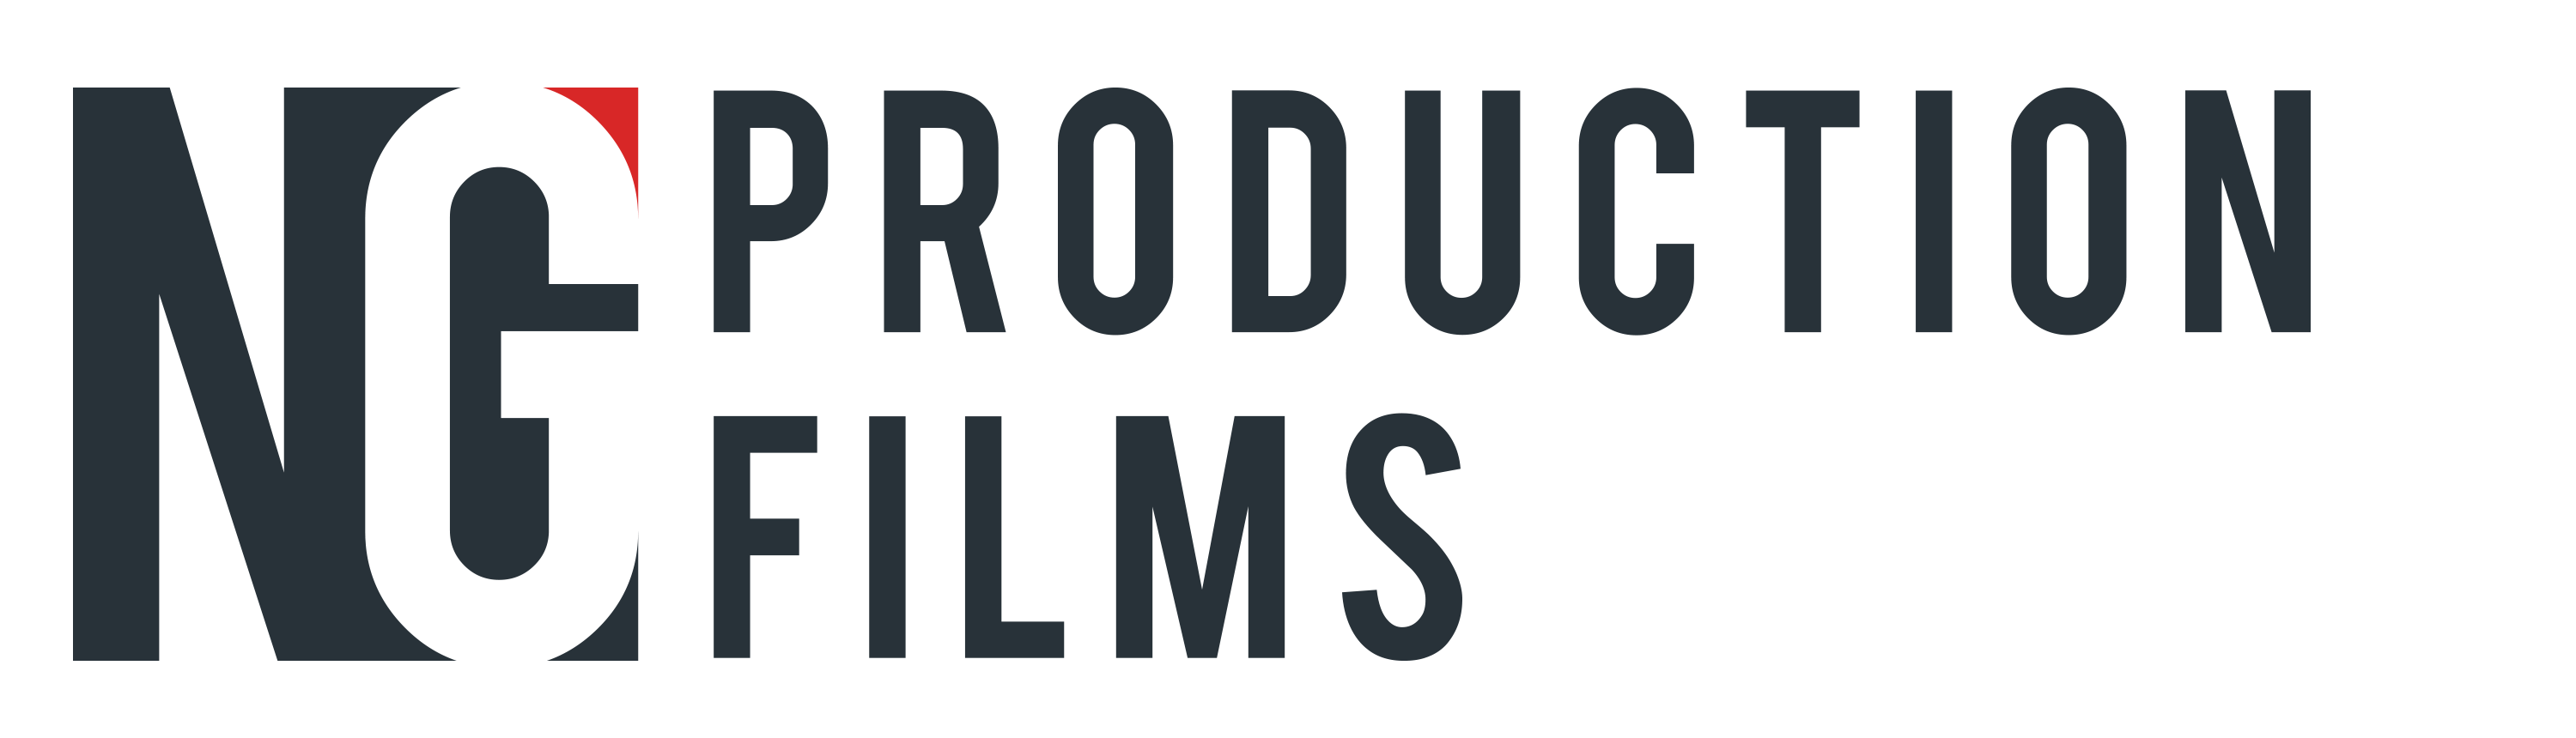 Tampa Video Production Services - Orlando Video Production